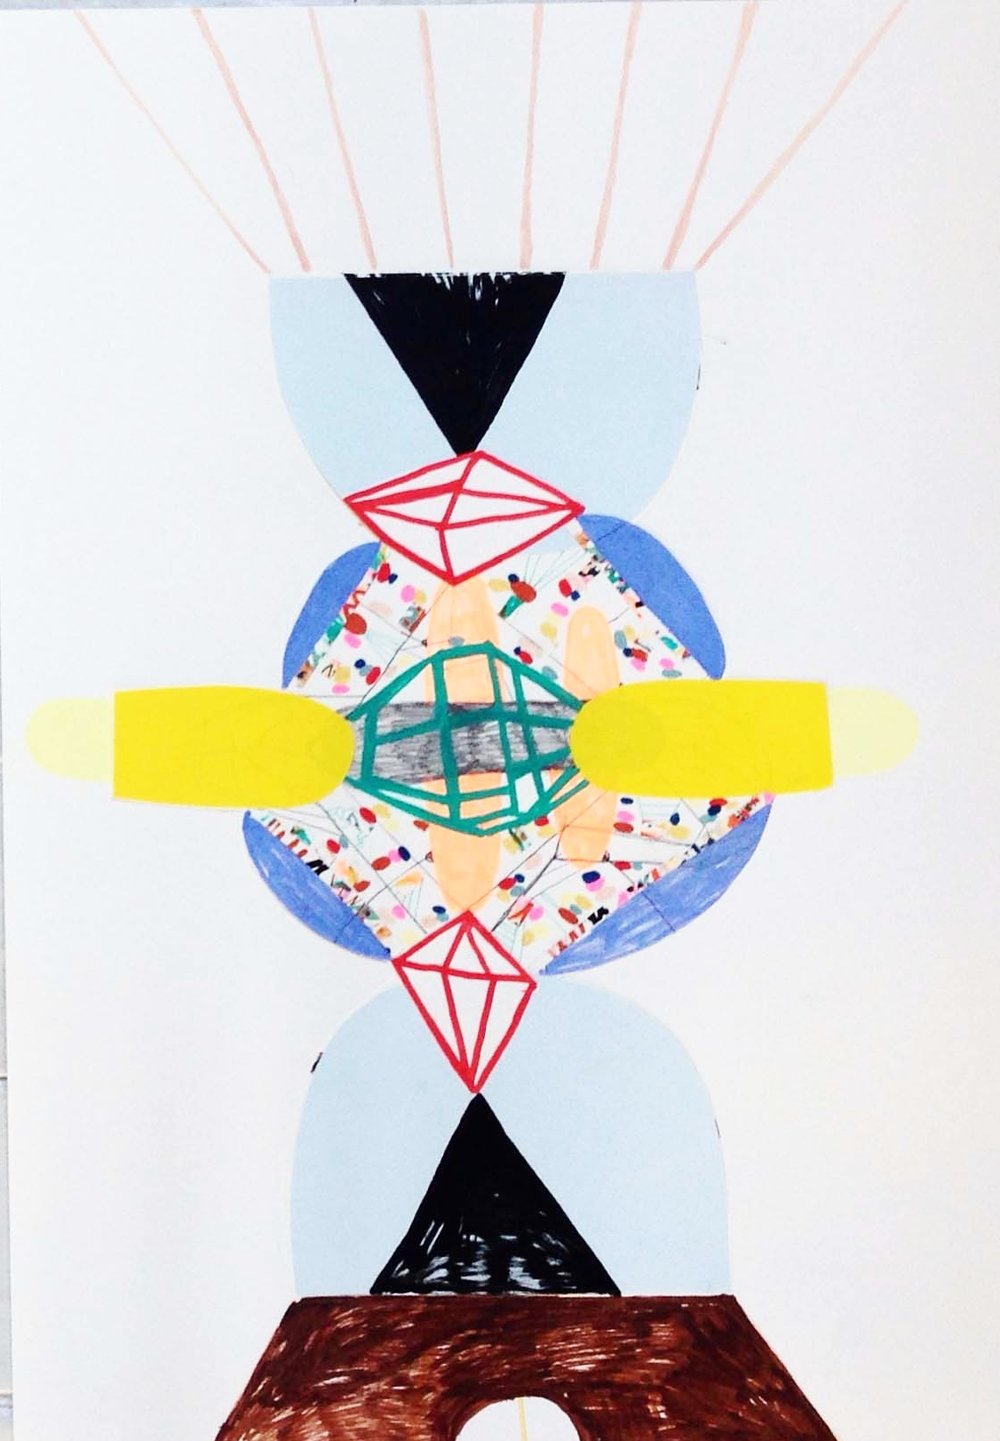 """Aleration of structure"" Acrylic tusch, pencil, and paper cuts on paper. 84 x 42 cm. 2015."